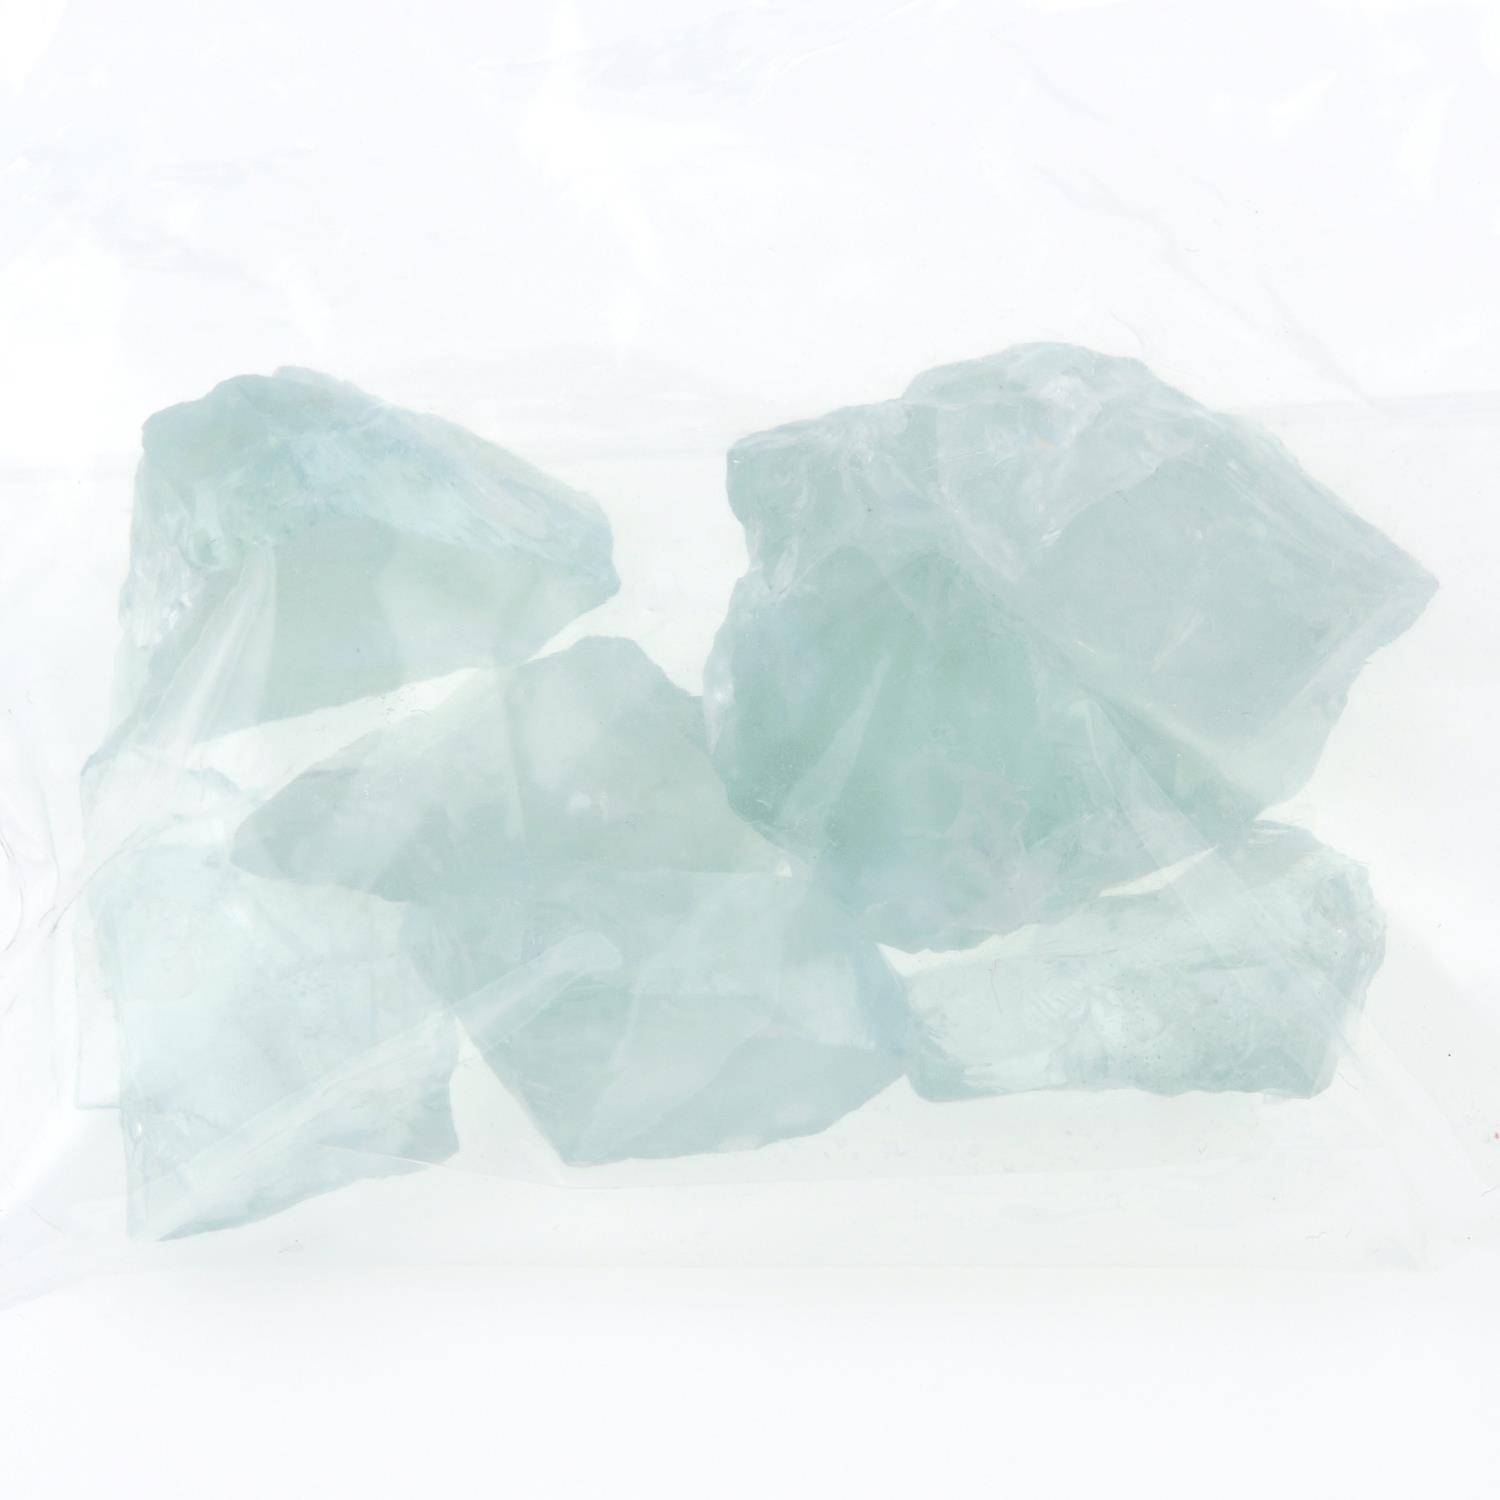 A selection of rough aquamarines. - Image 2 of 2